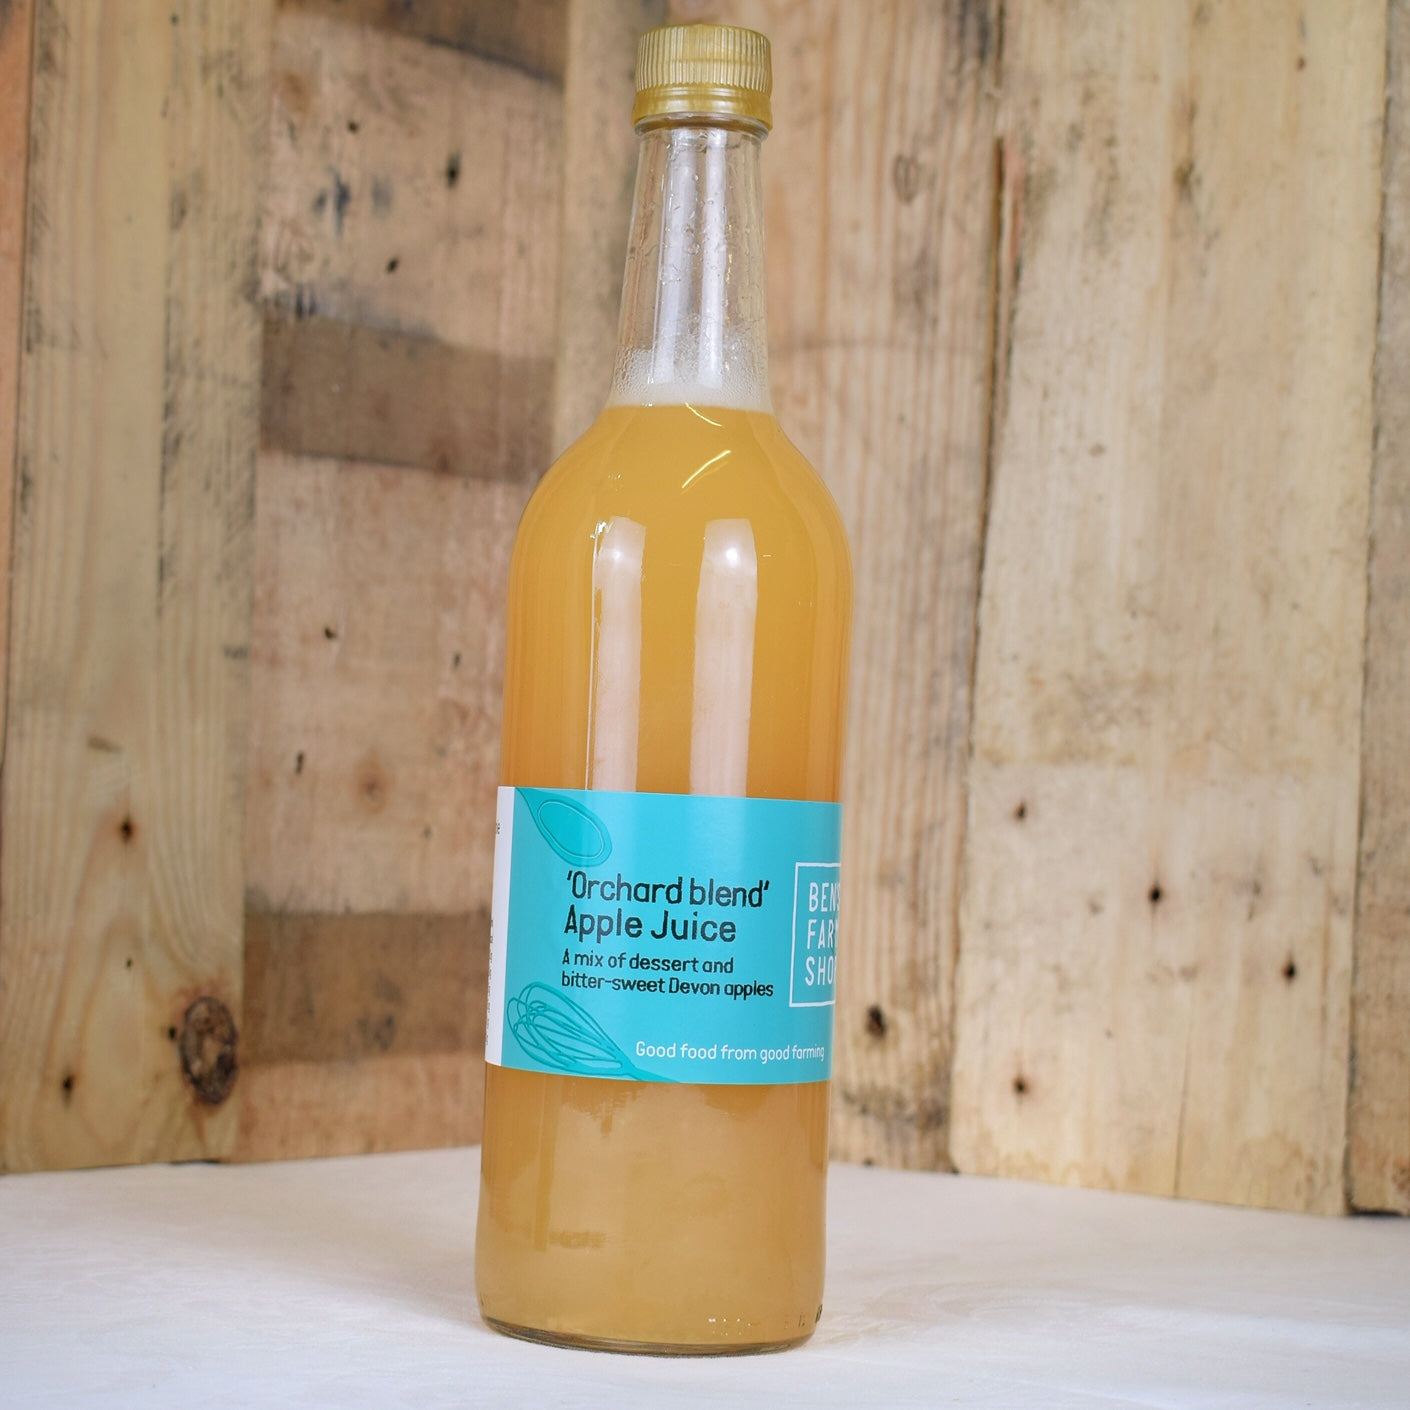 Ben's Farm Shop apple juice (Orchard Blend)